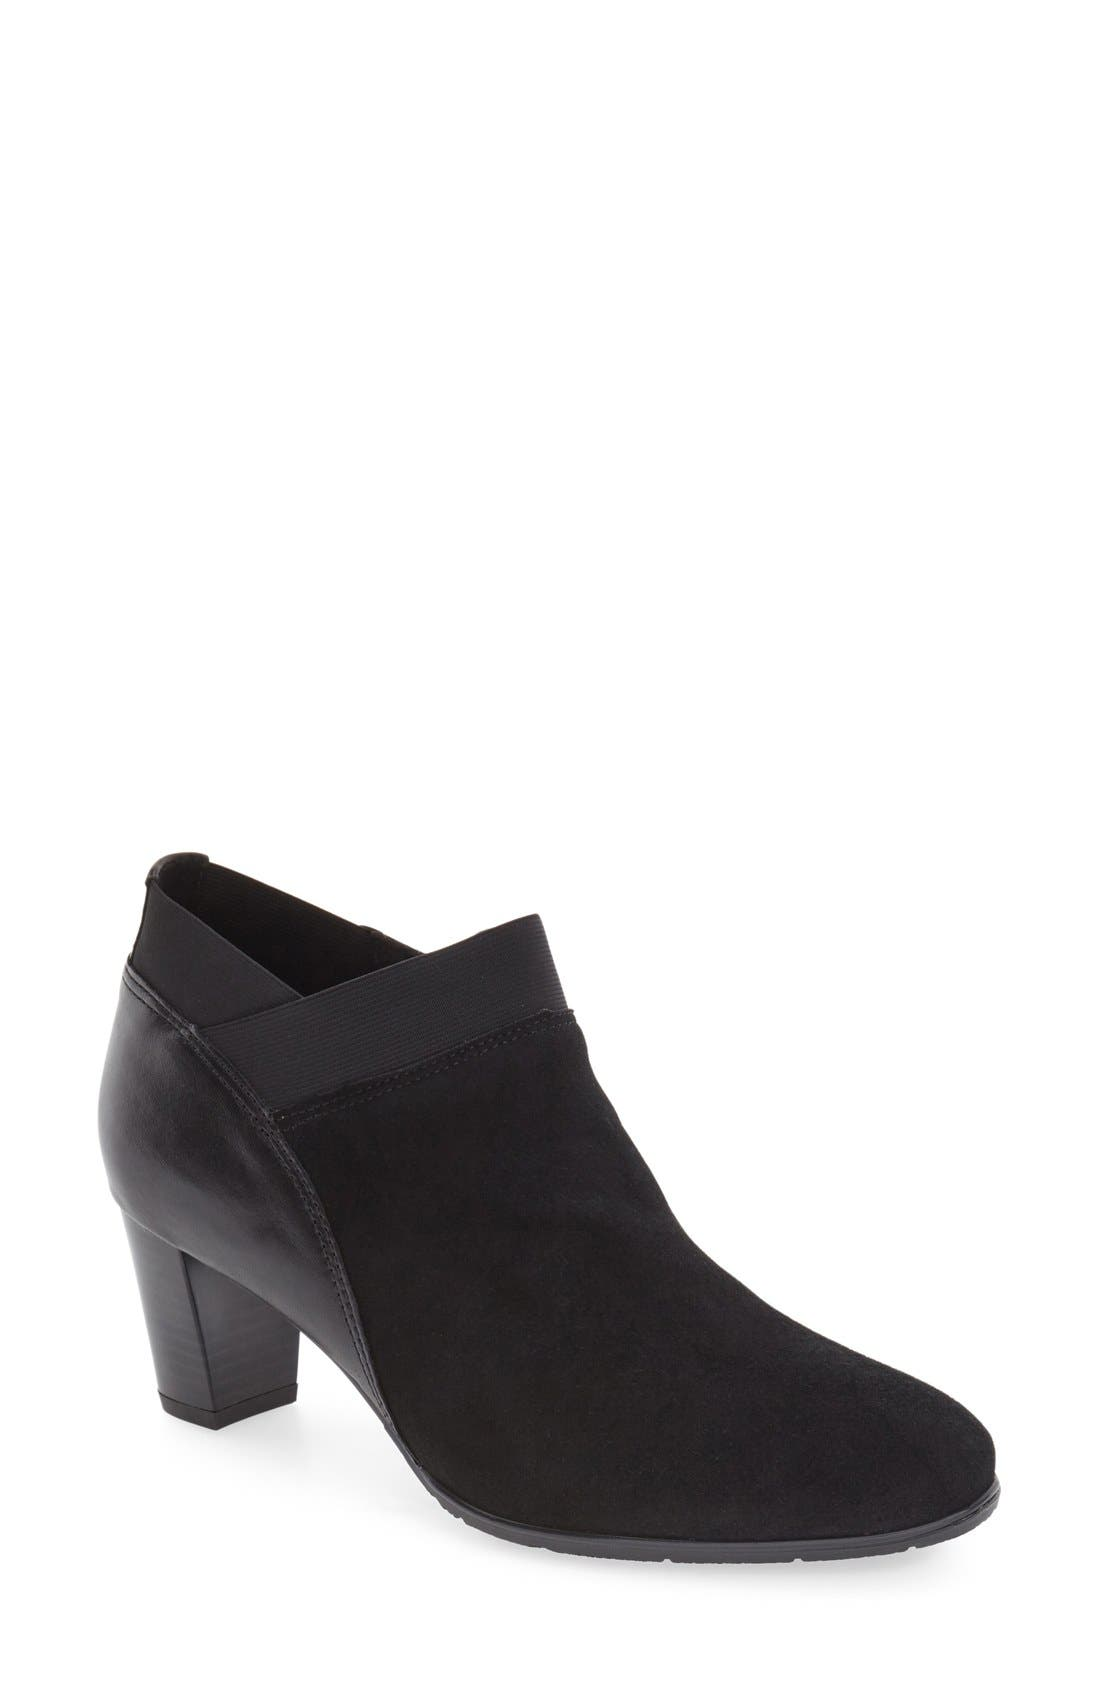 'Torrence' Almond Toe Zip Bootie,                             Main thumbnail 1, color,                             Black Suede